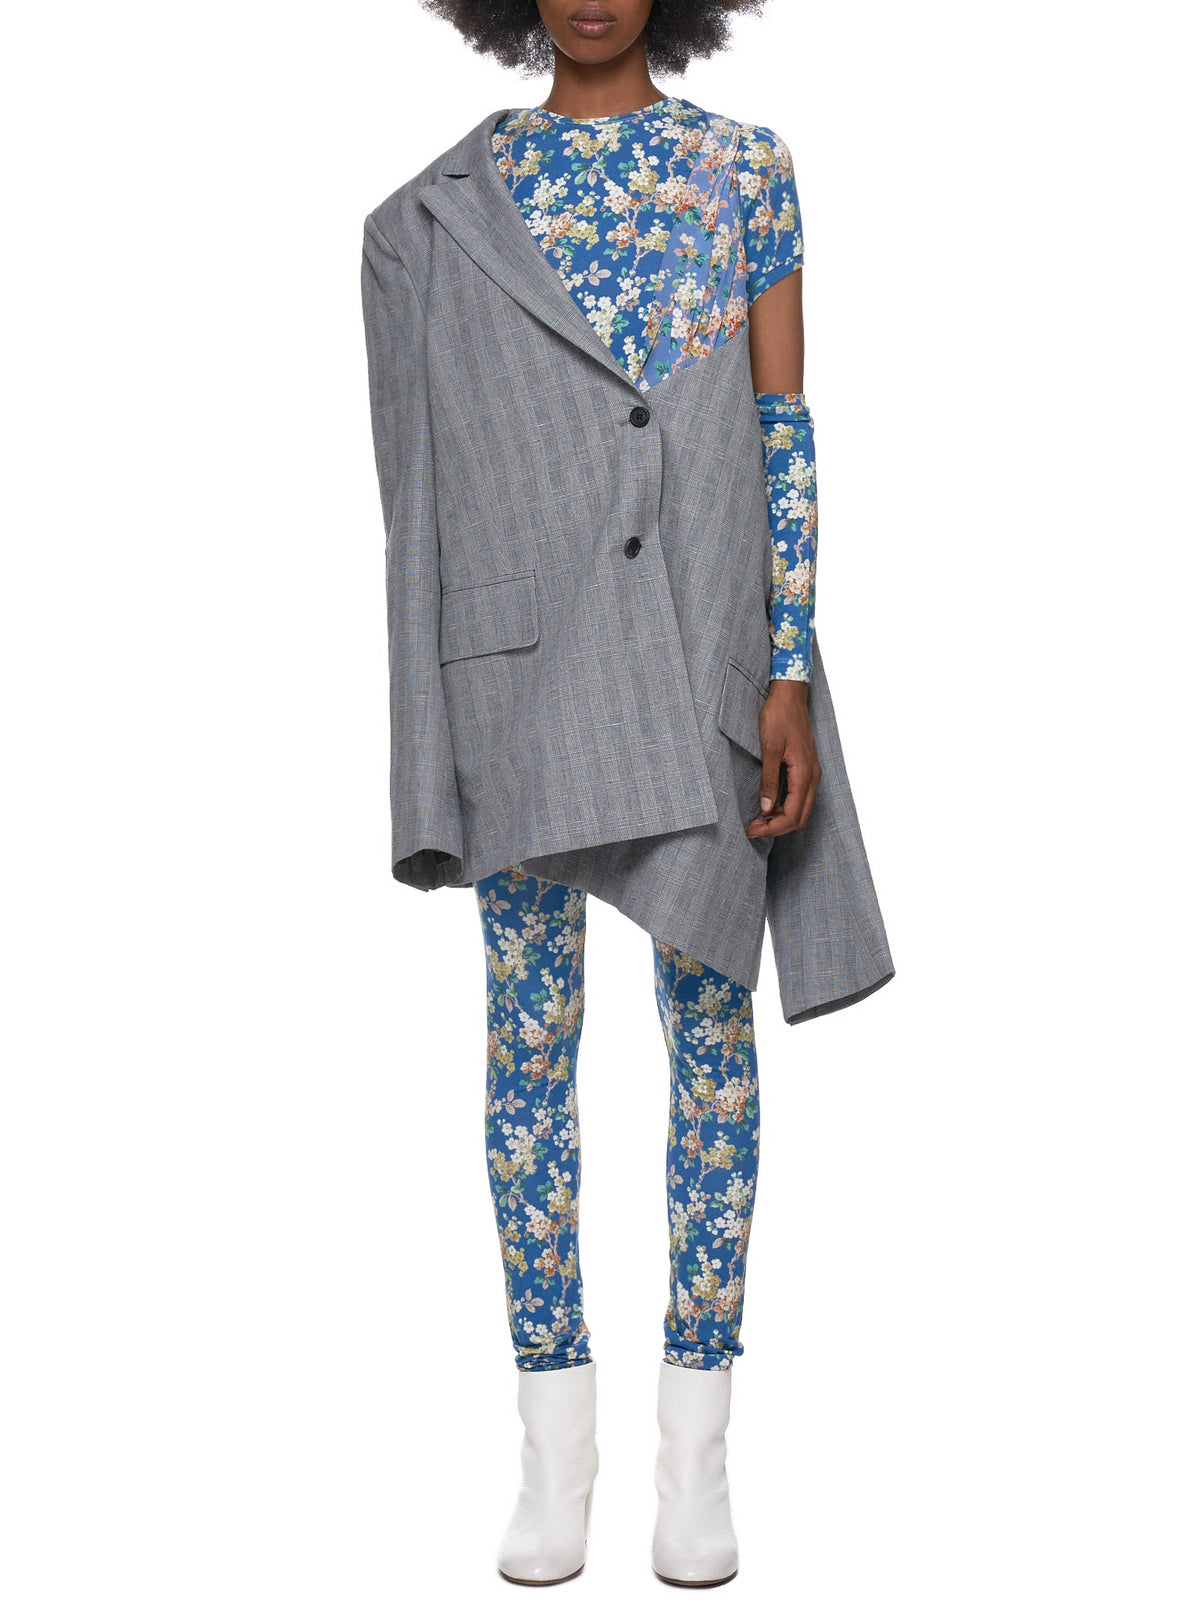 Hanging Blazer Dress (DWM5BLZ3-GREY-CHECK-BLUE-FLORA)